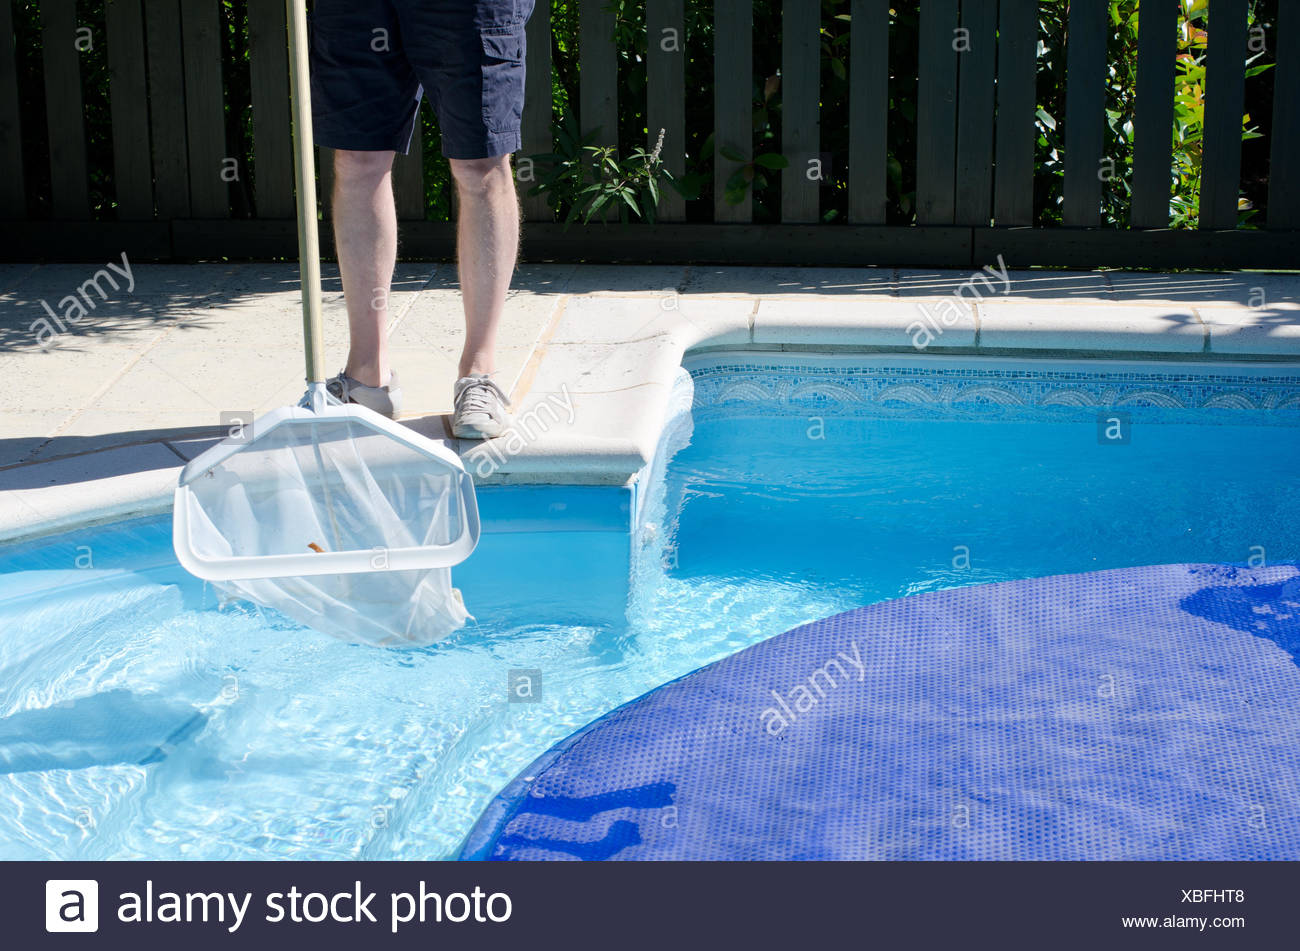 Pool Cleaner Cleaning Net Swimming Stockfotos & Pool Cleaner ...